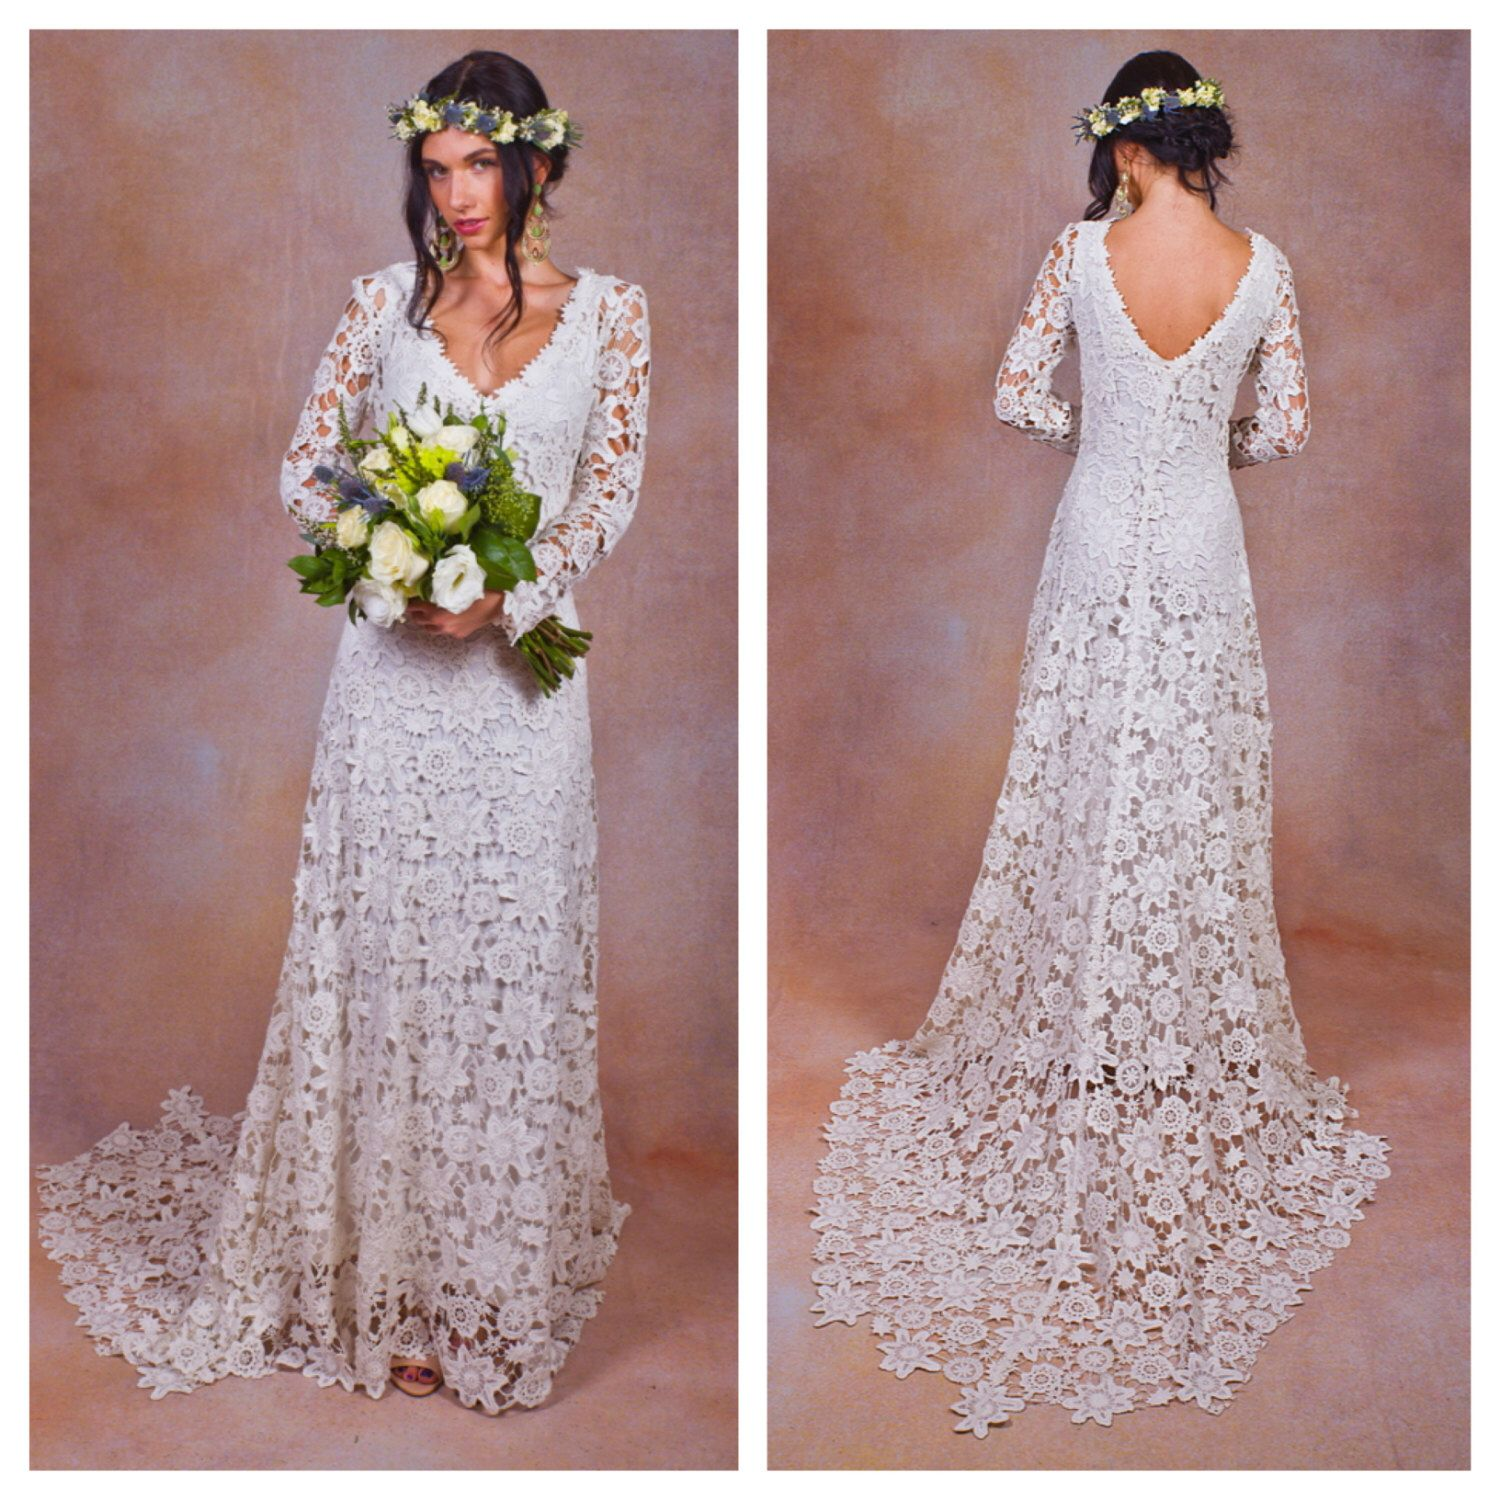 Rustic boho wedding dress simple crochet lace bohemian wedding